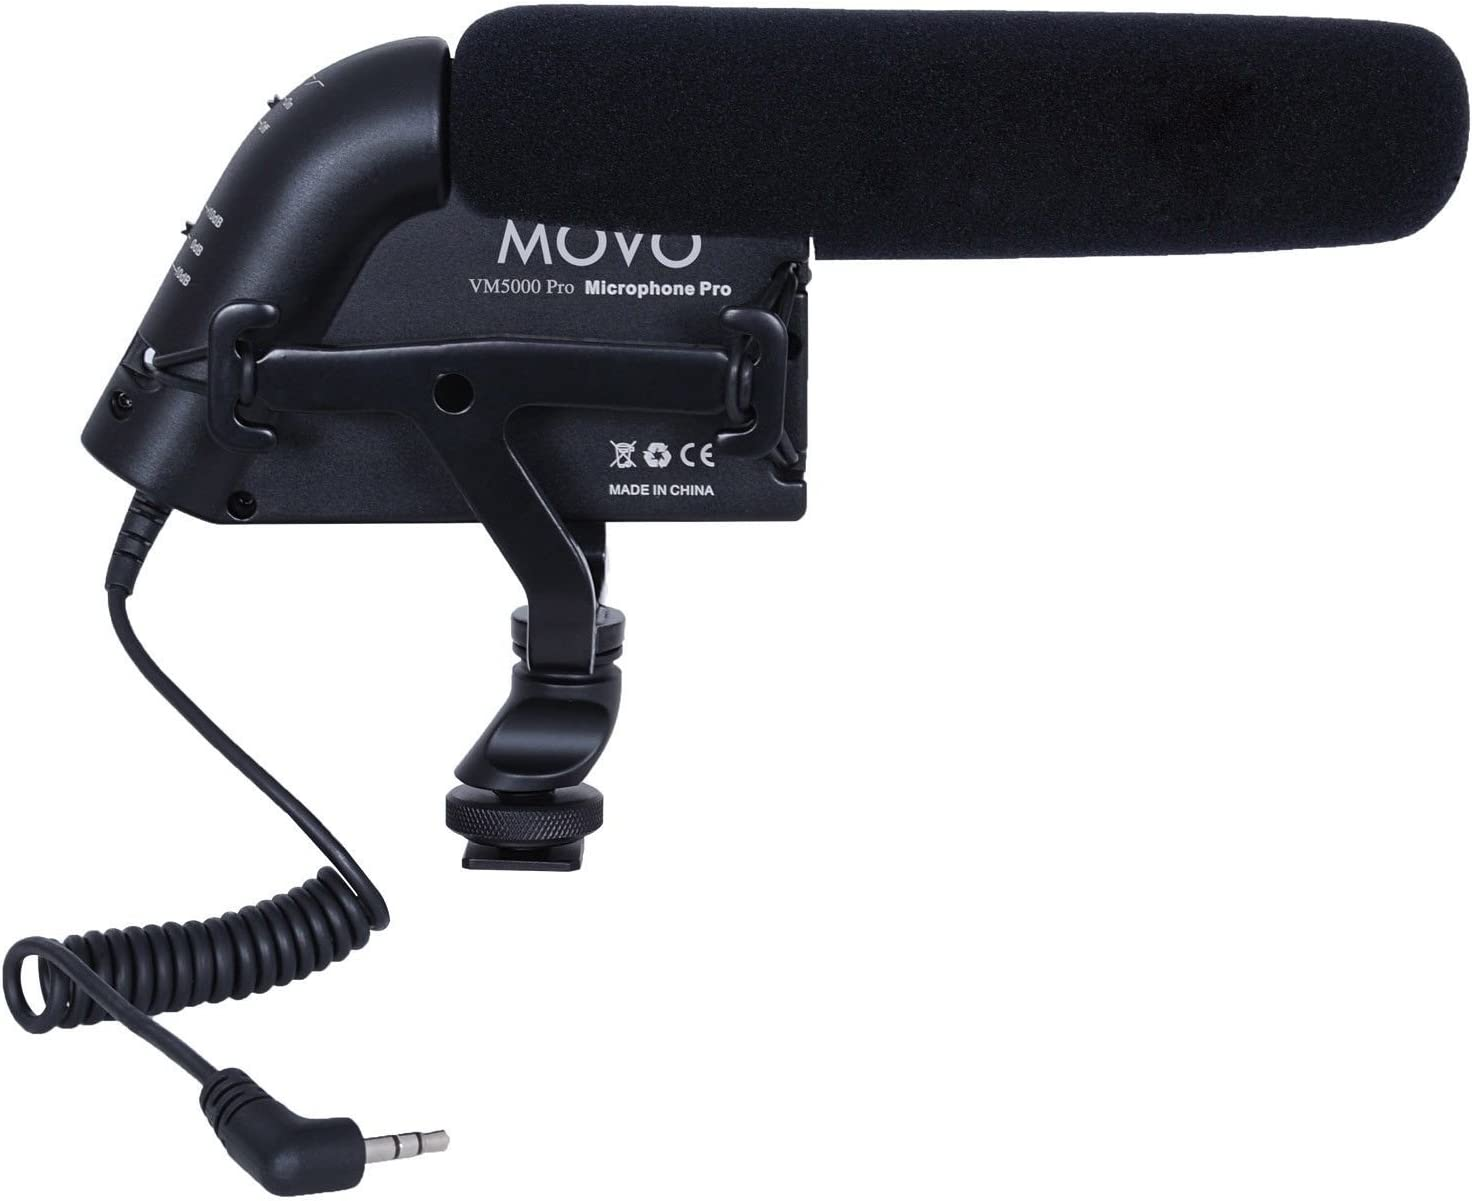 Aluminum Body Movo VXR5000-PRO HD Condenser Prosumer Video Microphone for DSLR Video Cameras with High Pass Filter and Audio Level Control